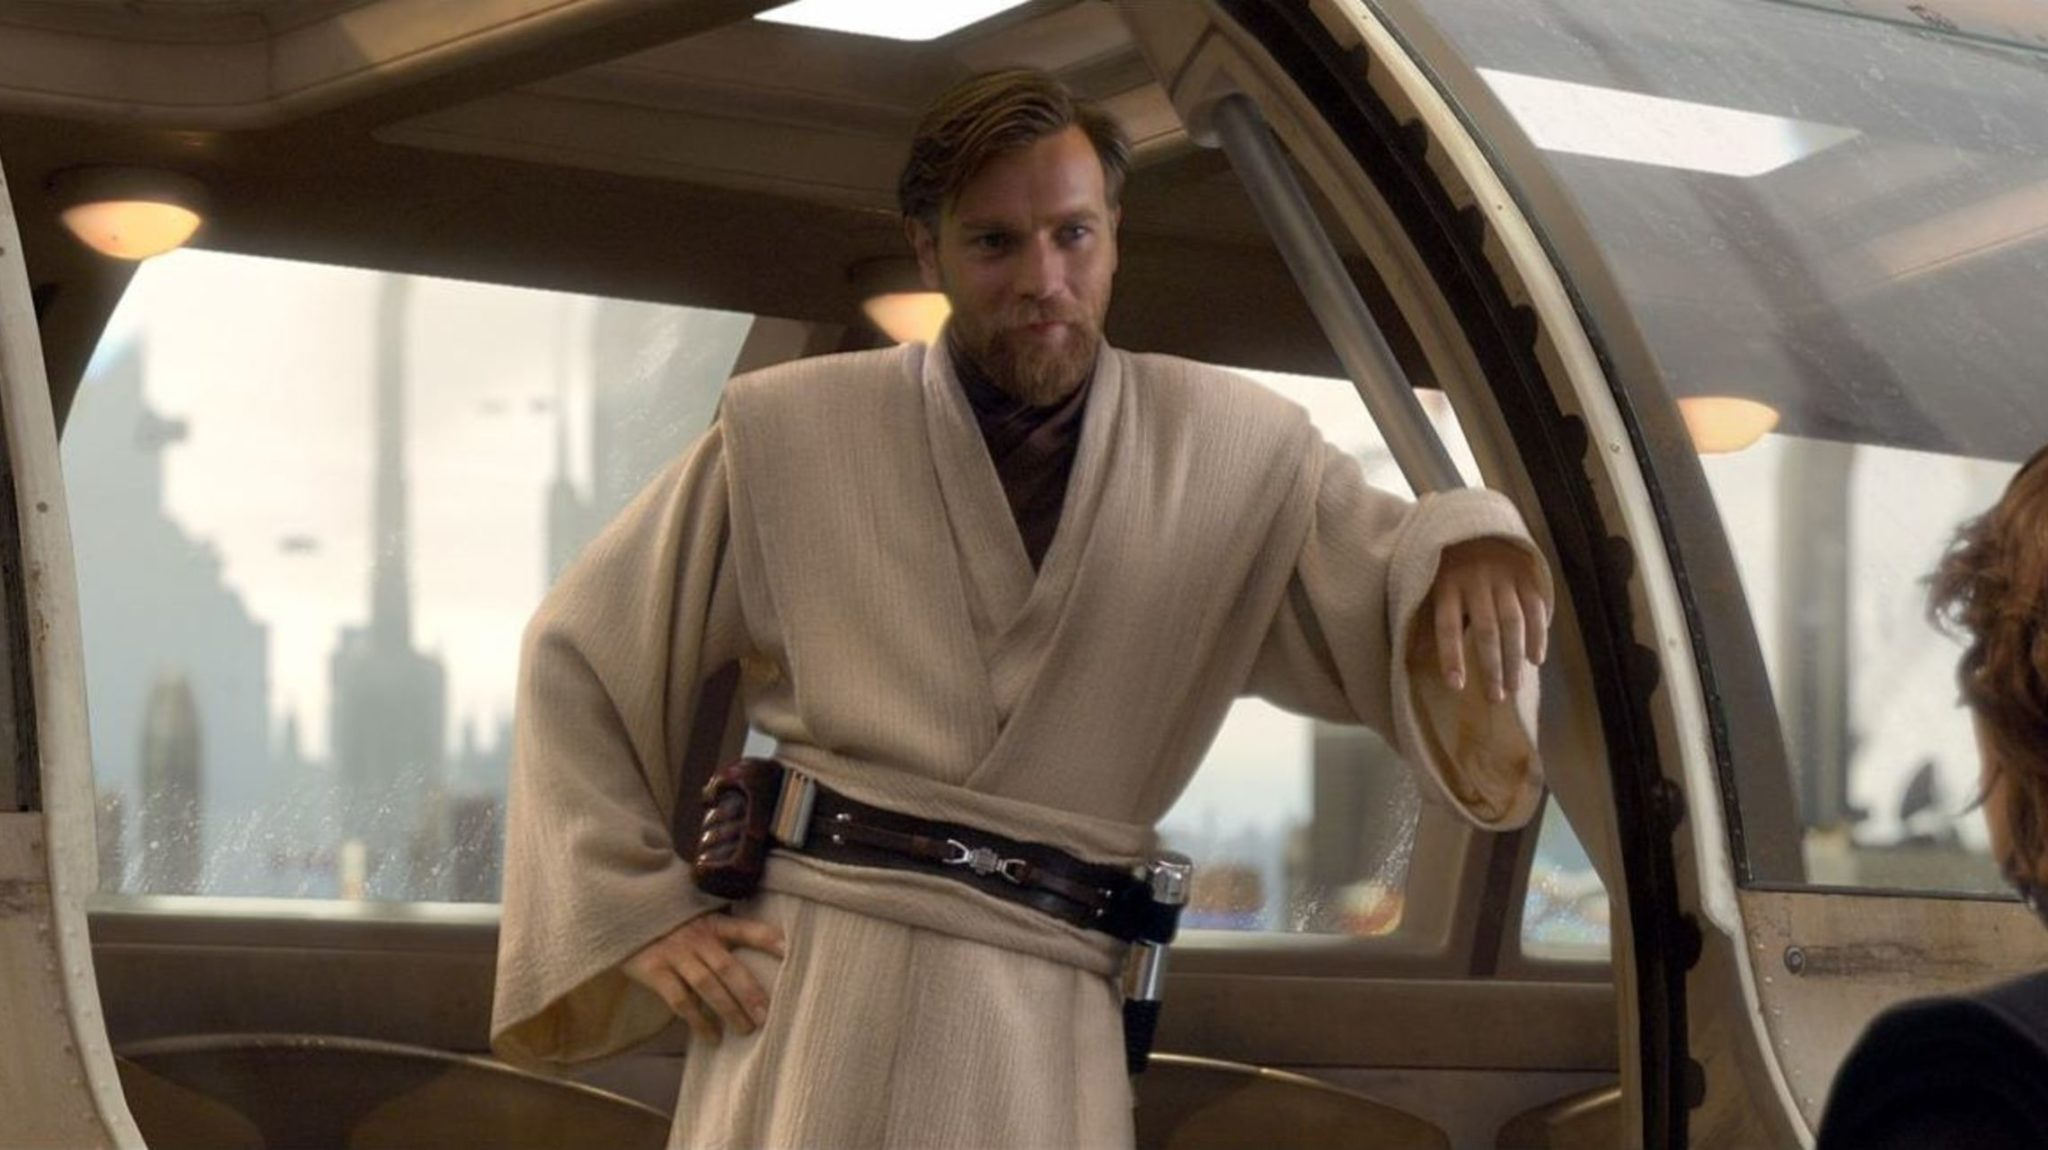 Obi-Wan Kenobi was originally planned to be Rey's grandfather, but that idea was scrapped midway through the trilogy.